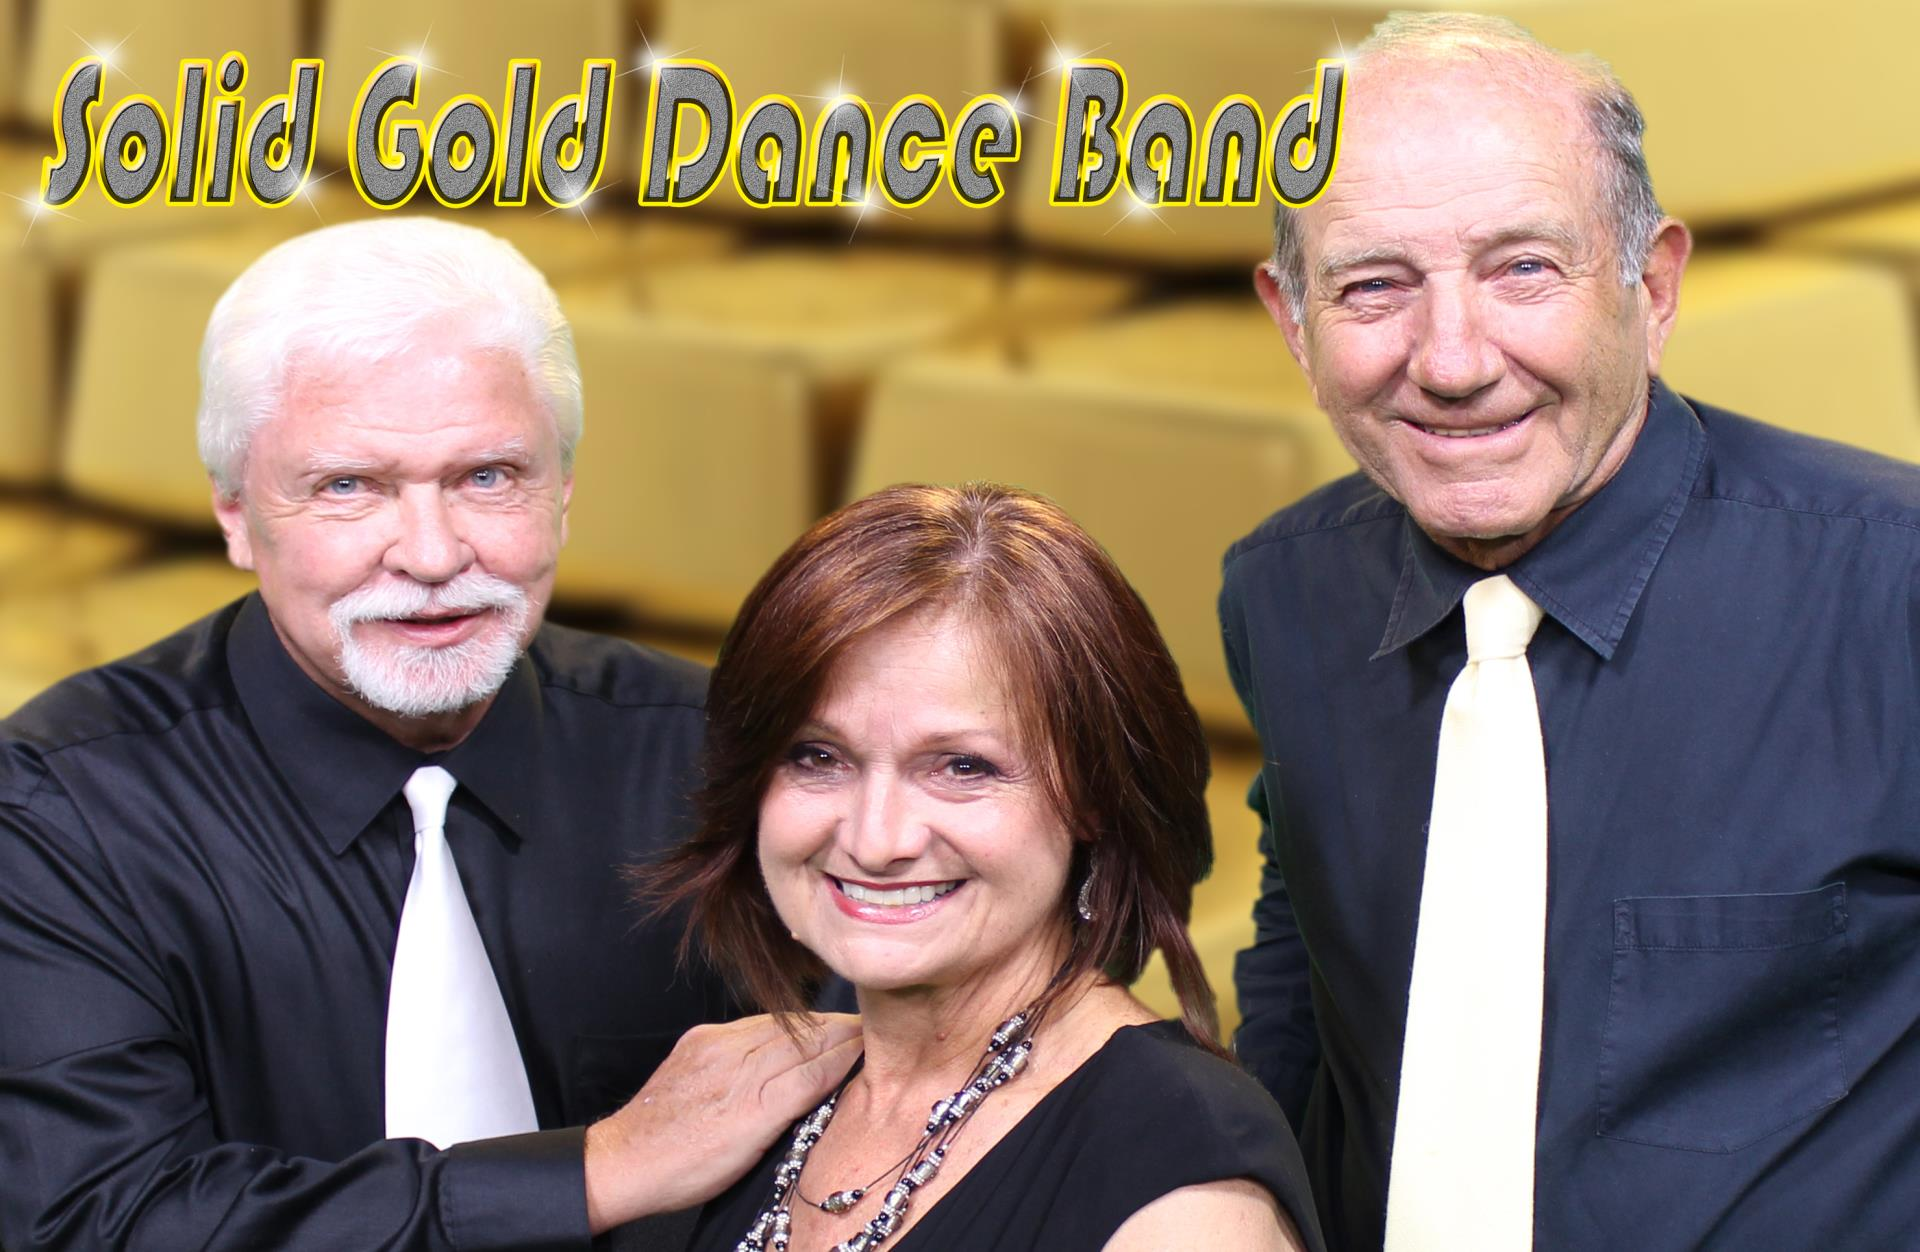 Solid Gold Dance Band